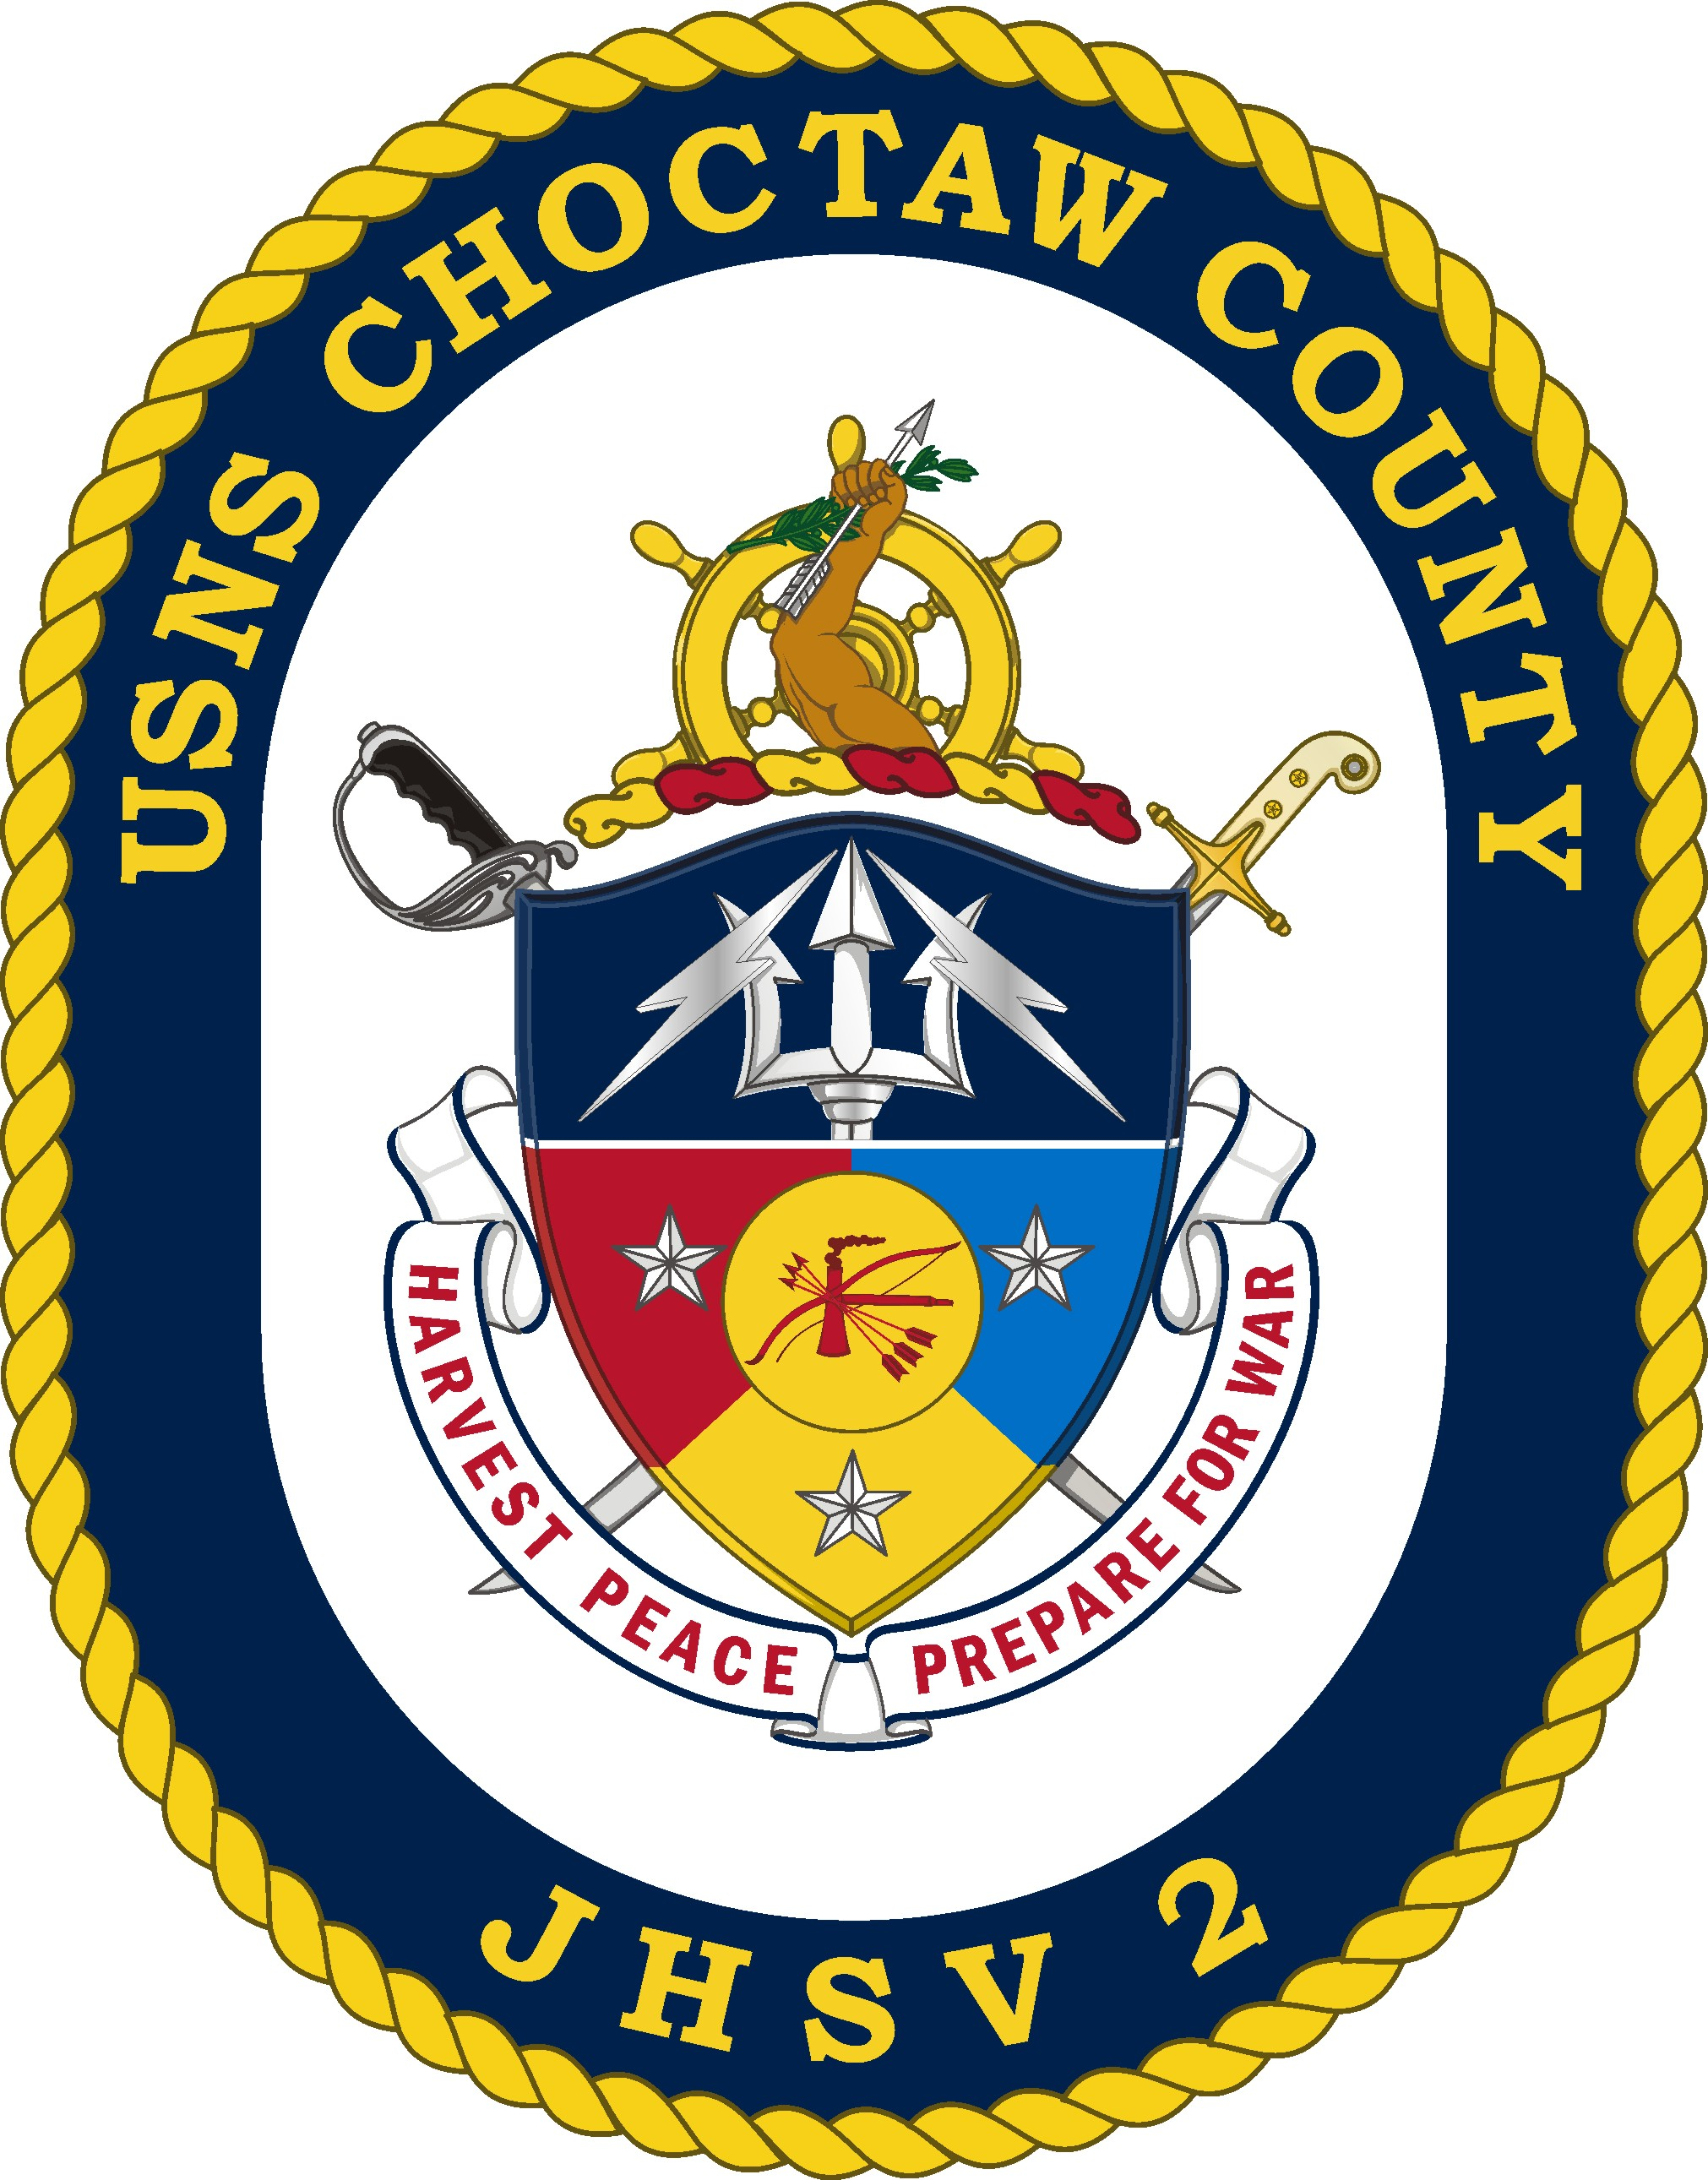 USNS CHOCTAW COUNTY JHSV-2 SealGrafik: U.S. Navy